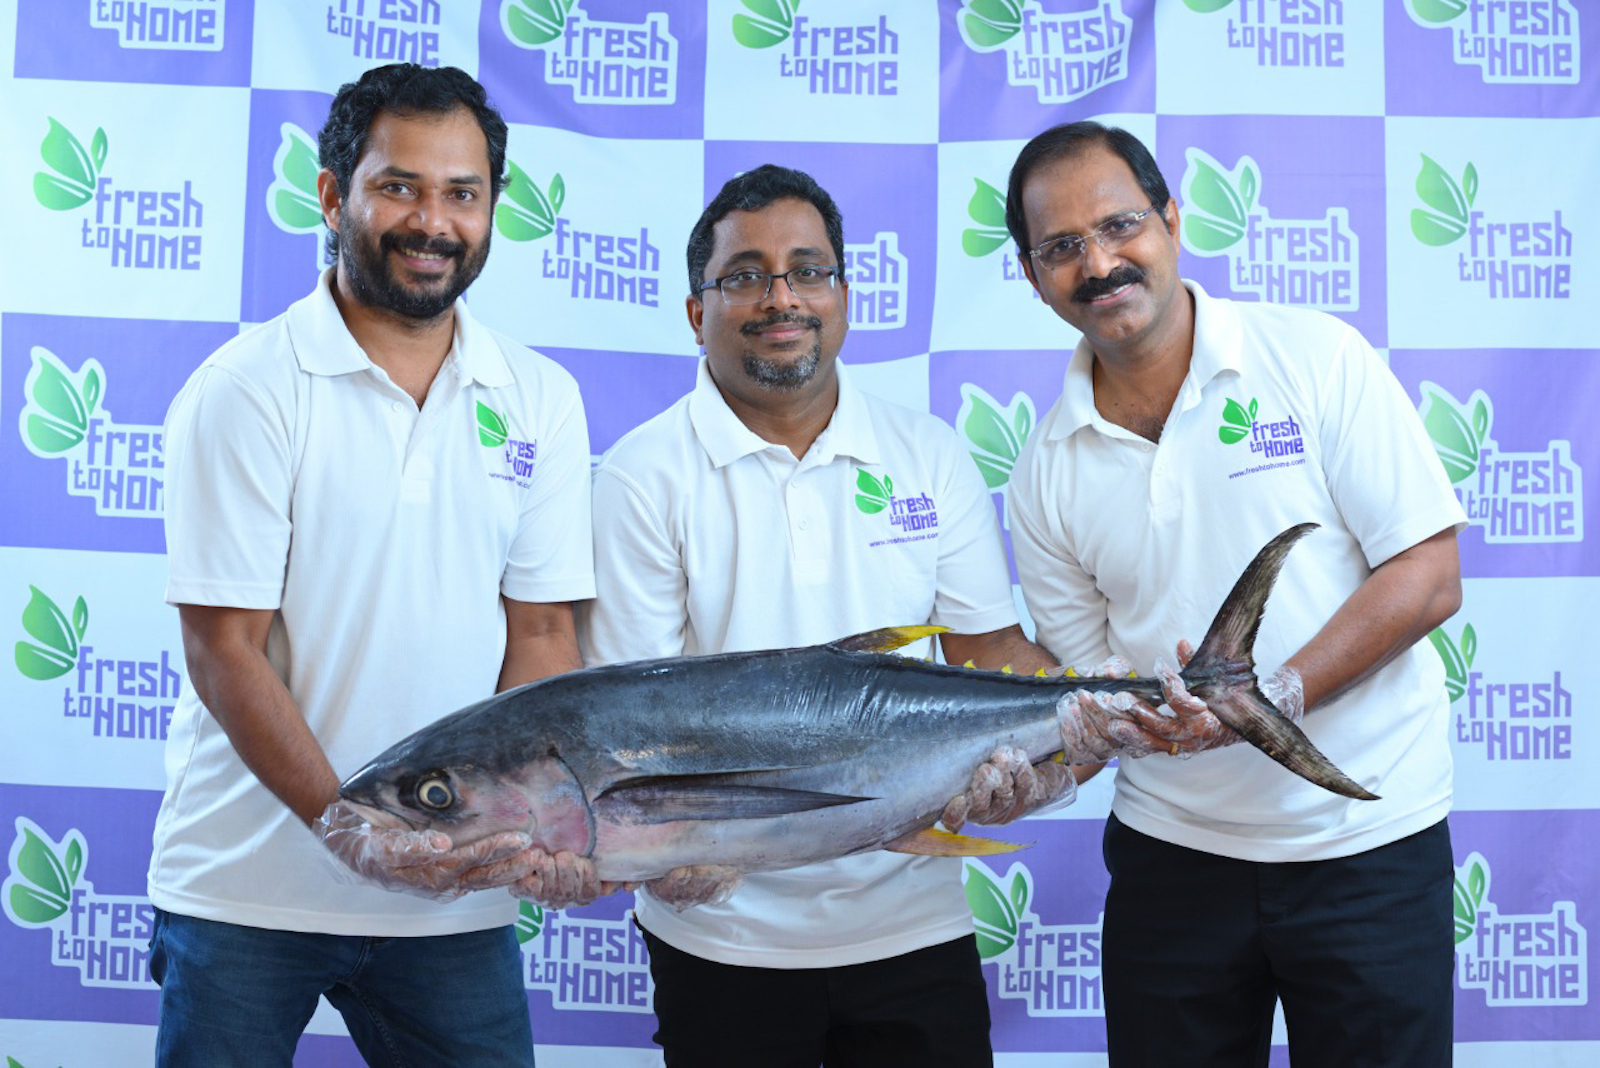 India's FreshToHome raises $121 million to grow its meat and vegetable e-commerce platform